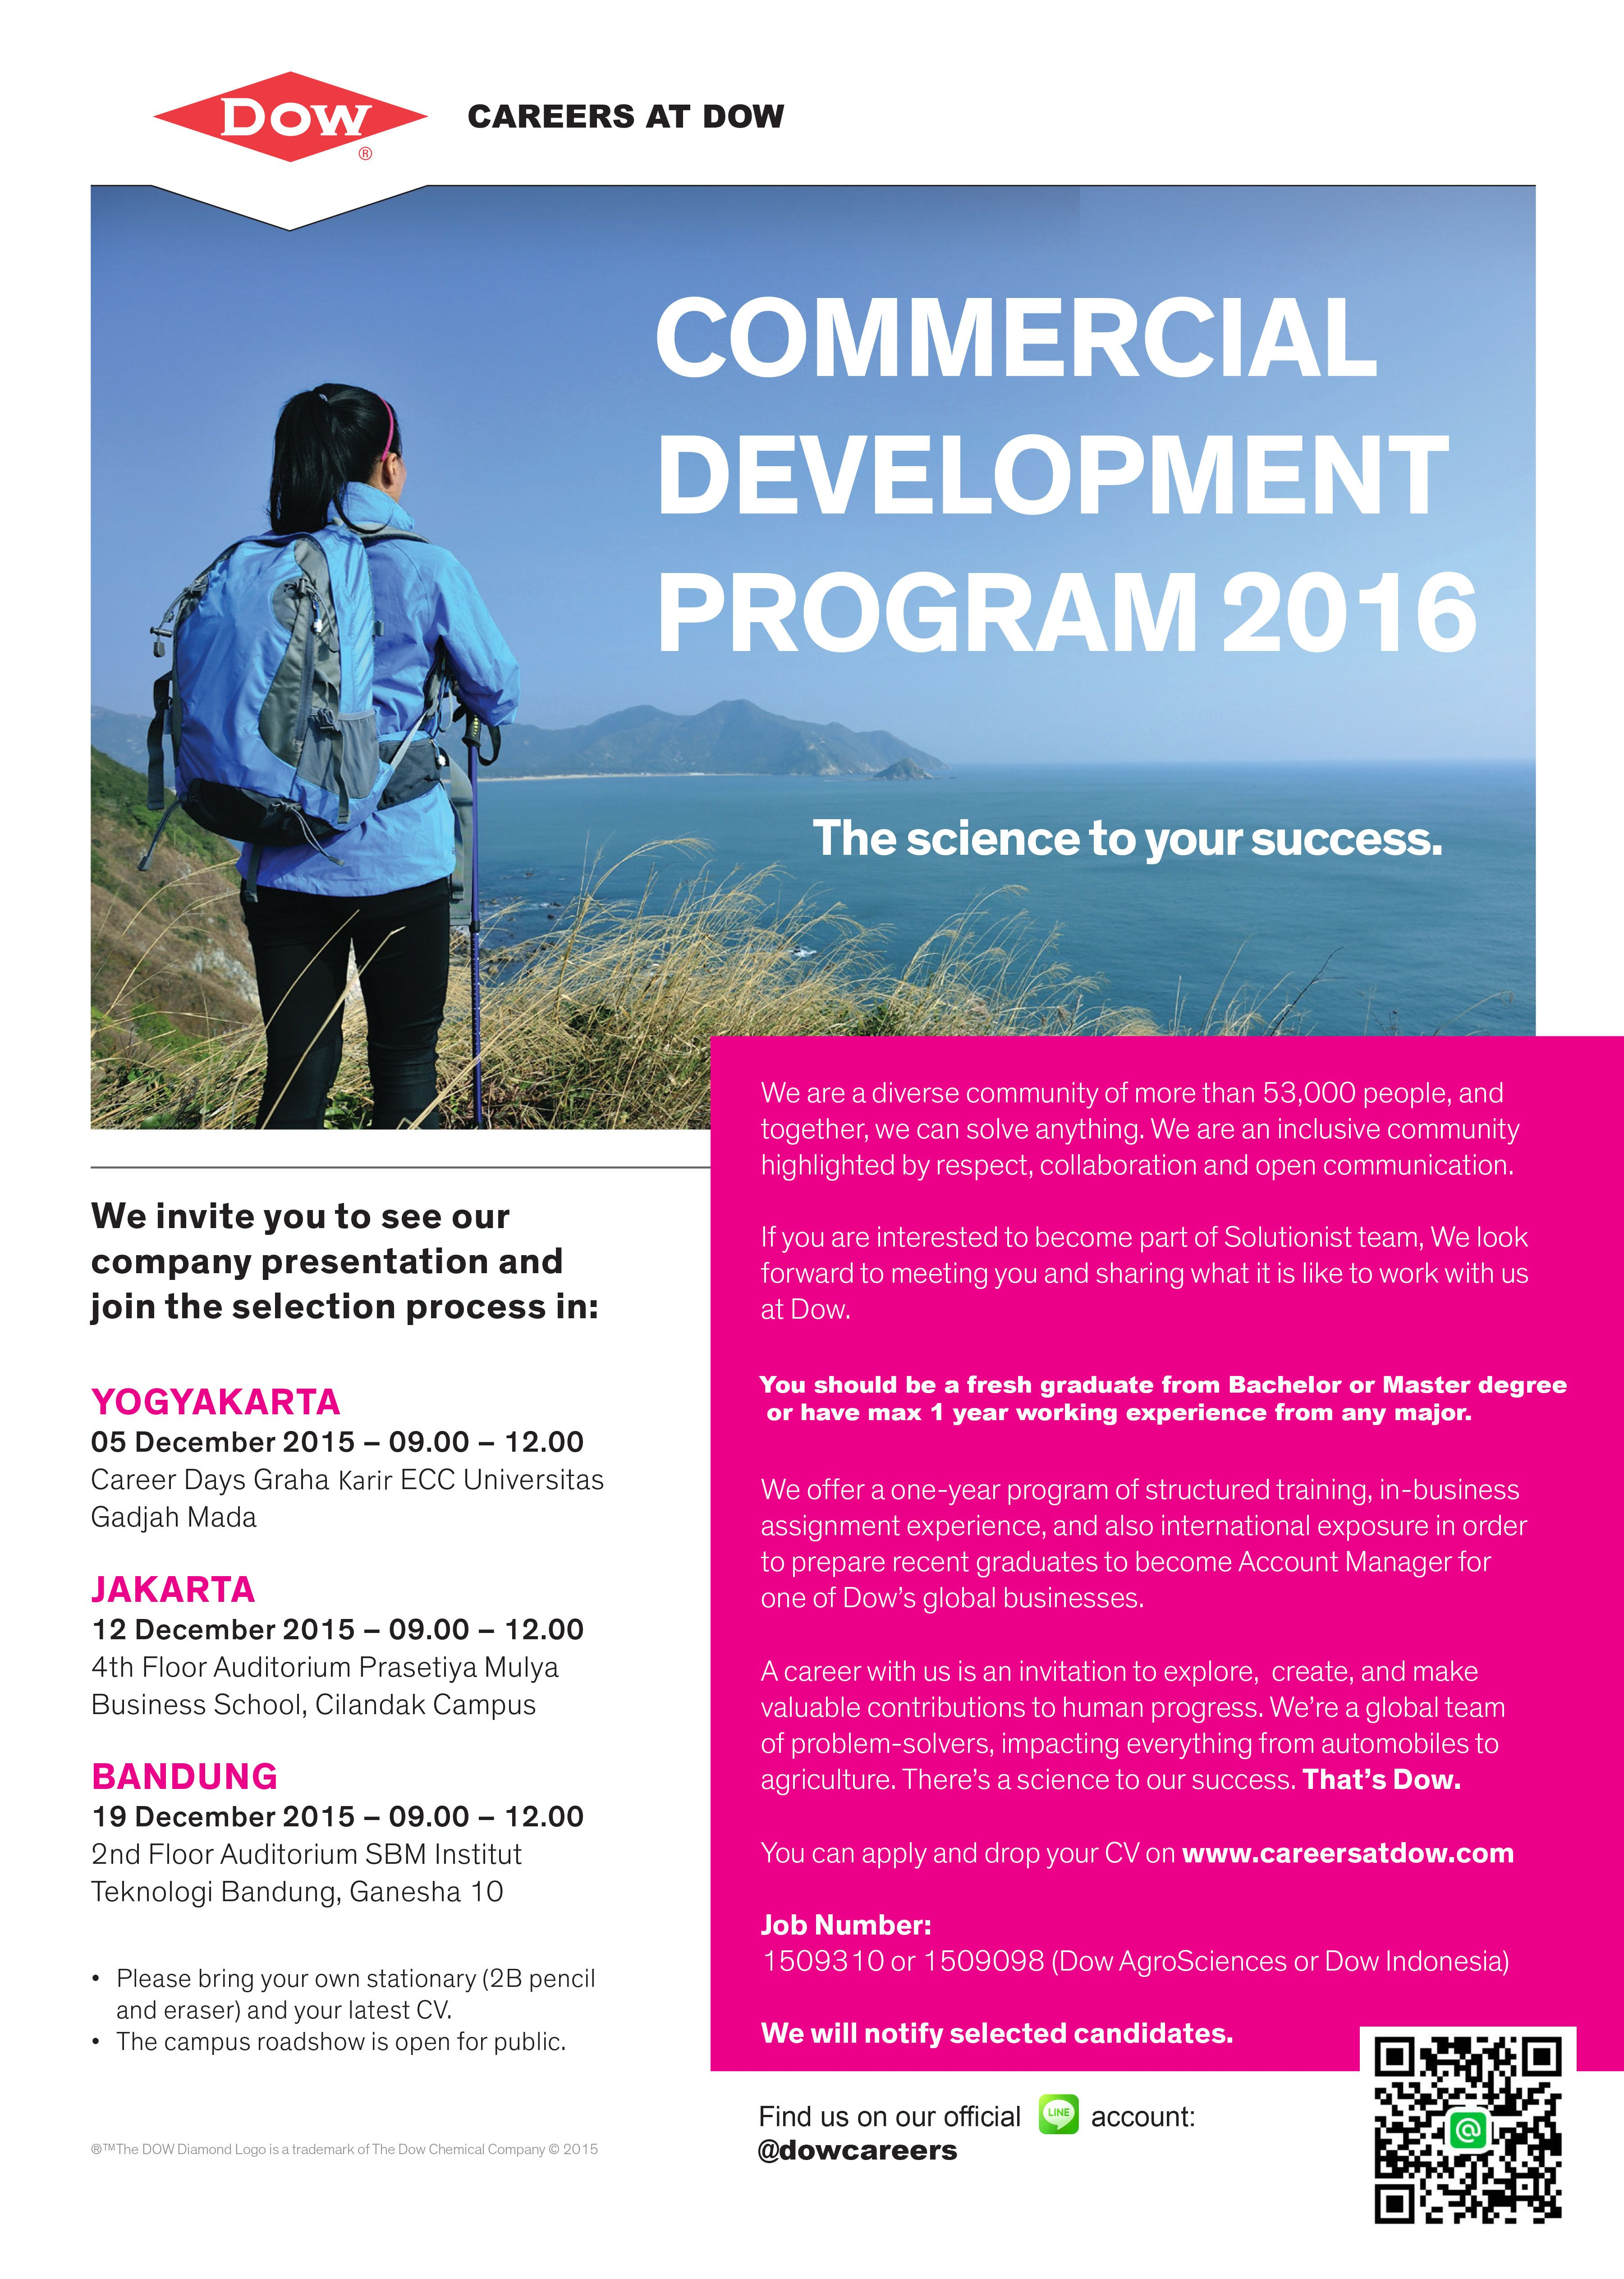 DIBUKA! 2 Career Development Program (CDP) dari Dow Indonesia >> http://bit.ly/20W0SVQ DEADLINE: 19 Desember 2015 #itbcc